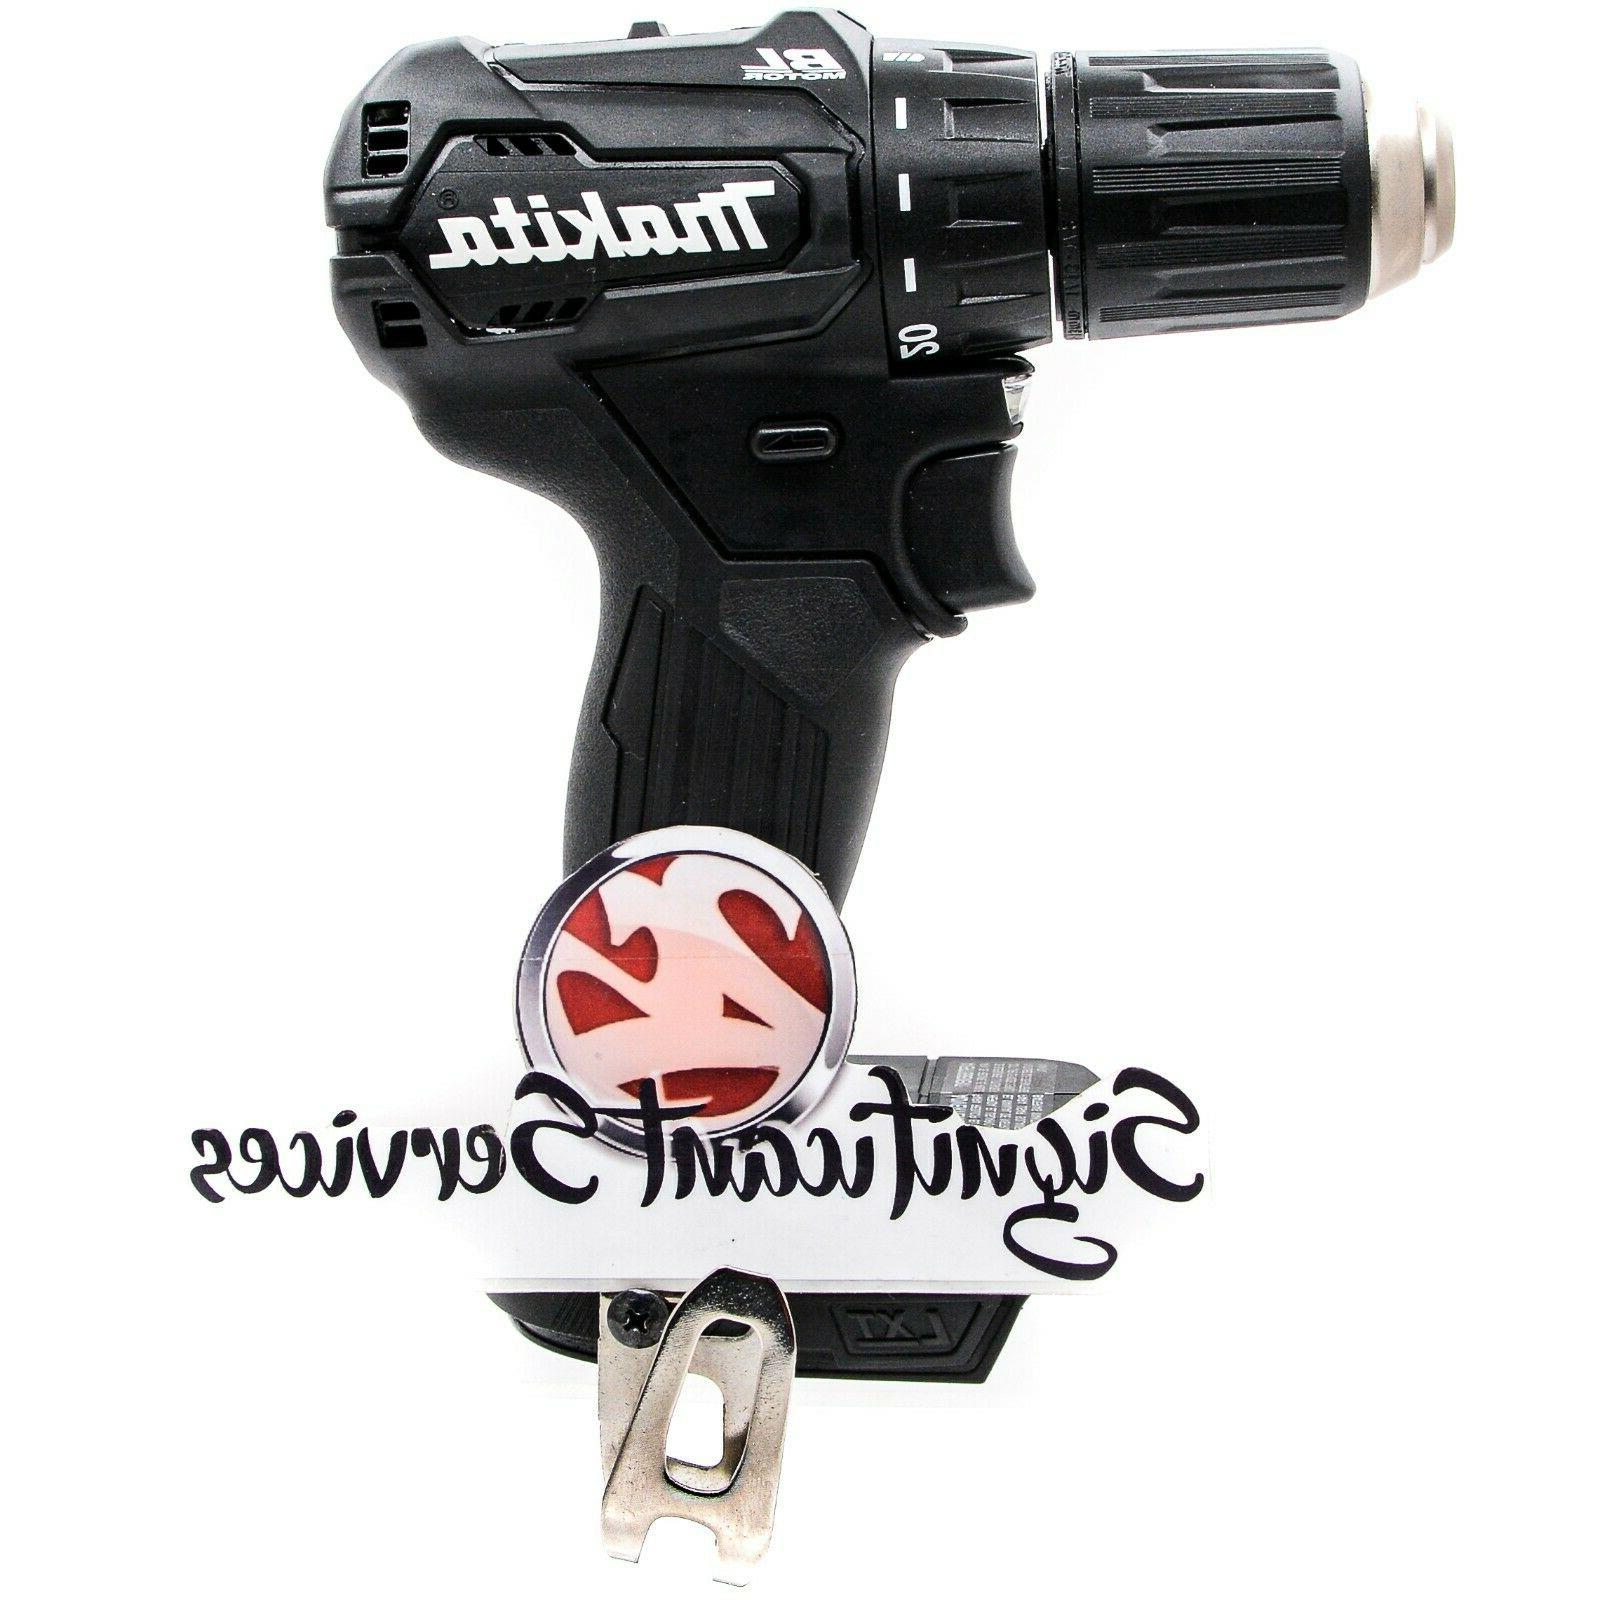 xfd11zb lxt lithium ion sub